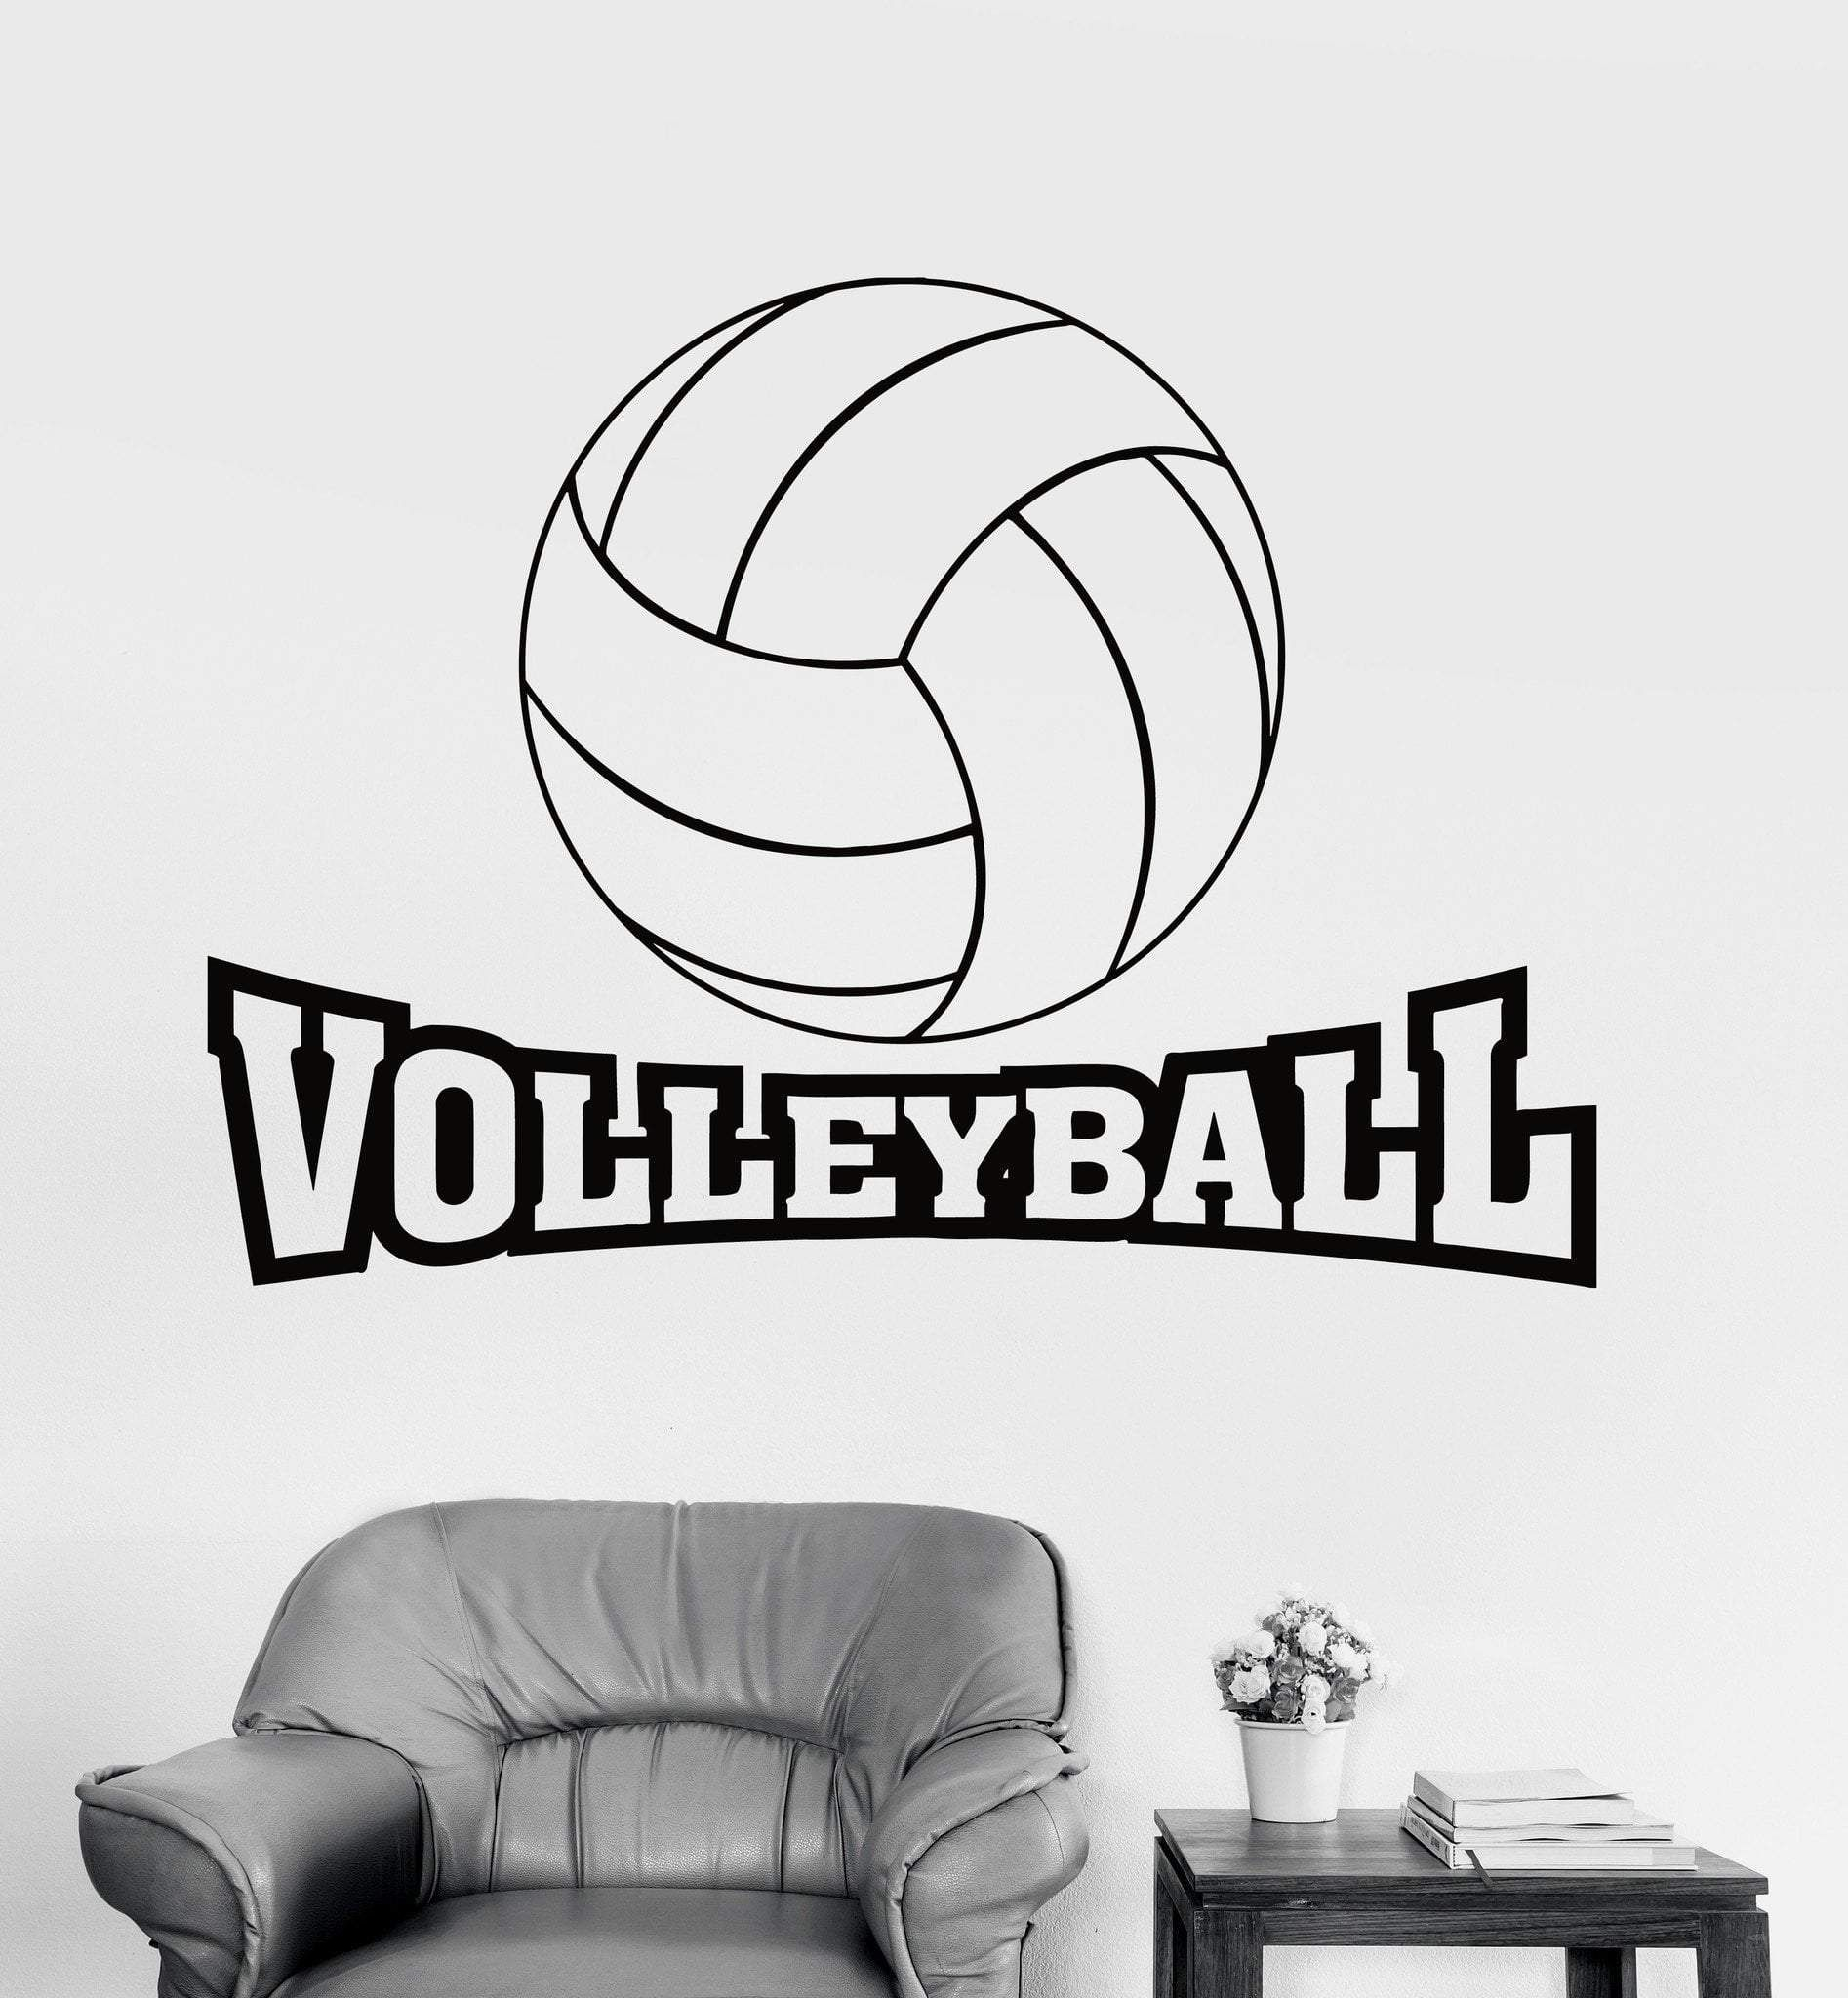 Wall Decal Sport Volleyball Ball Game Vinyl Sticker Unique Gift Z3236 Sports Wall Decals Wall Decals Volleyball